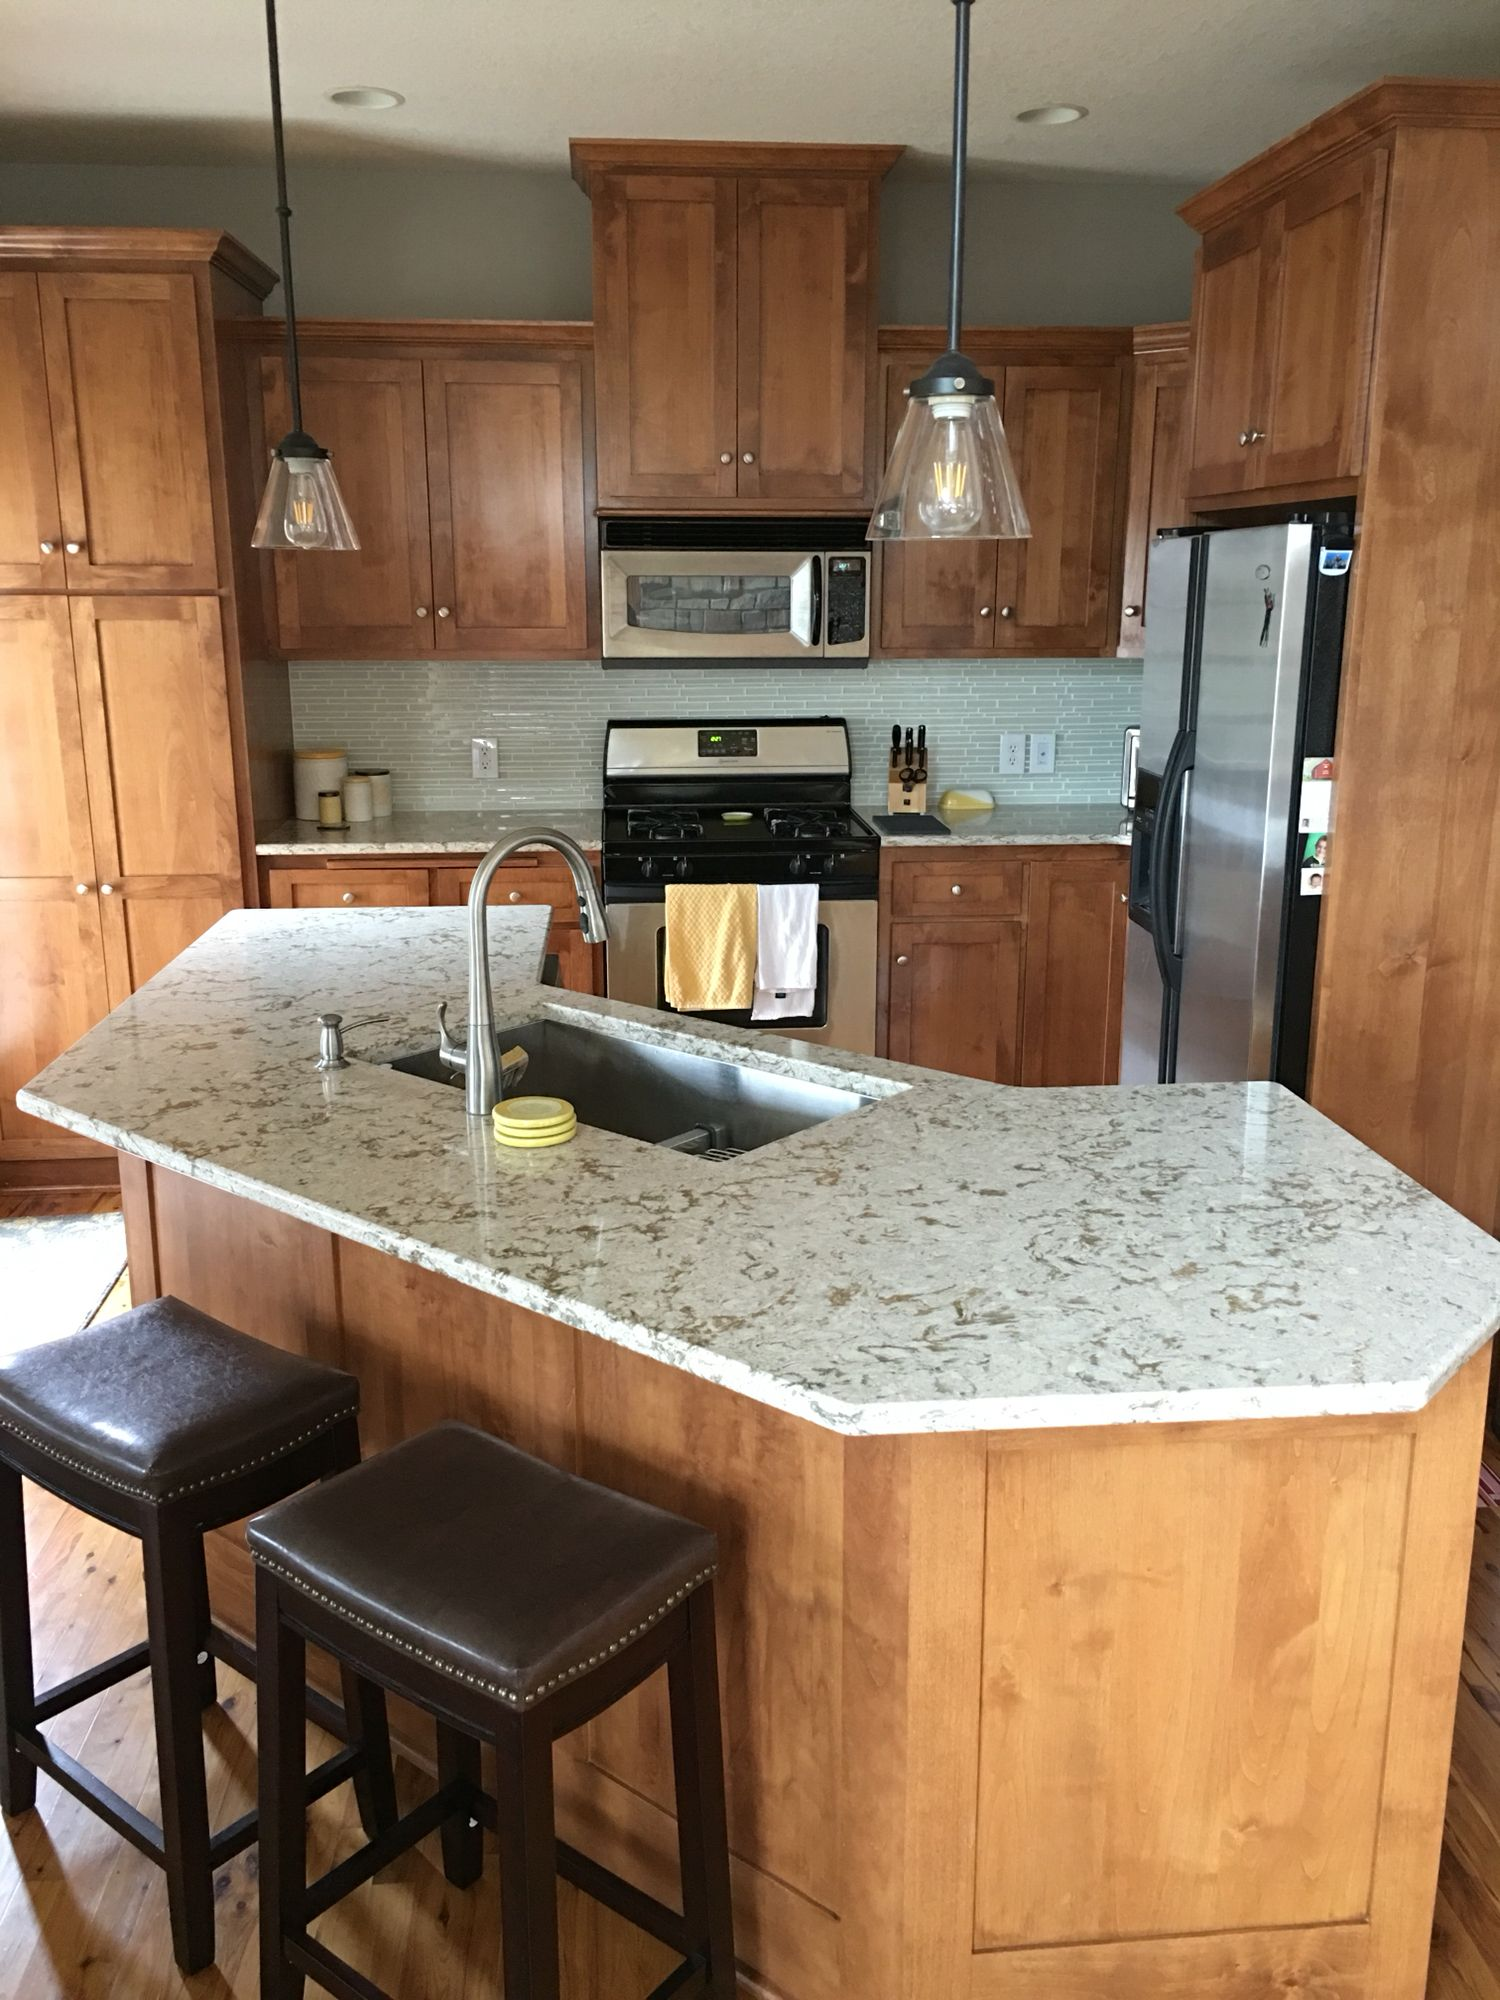 My updated kitchen! Cambria Windermere countertops, glass